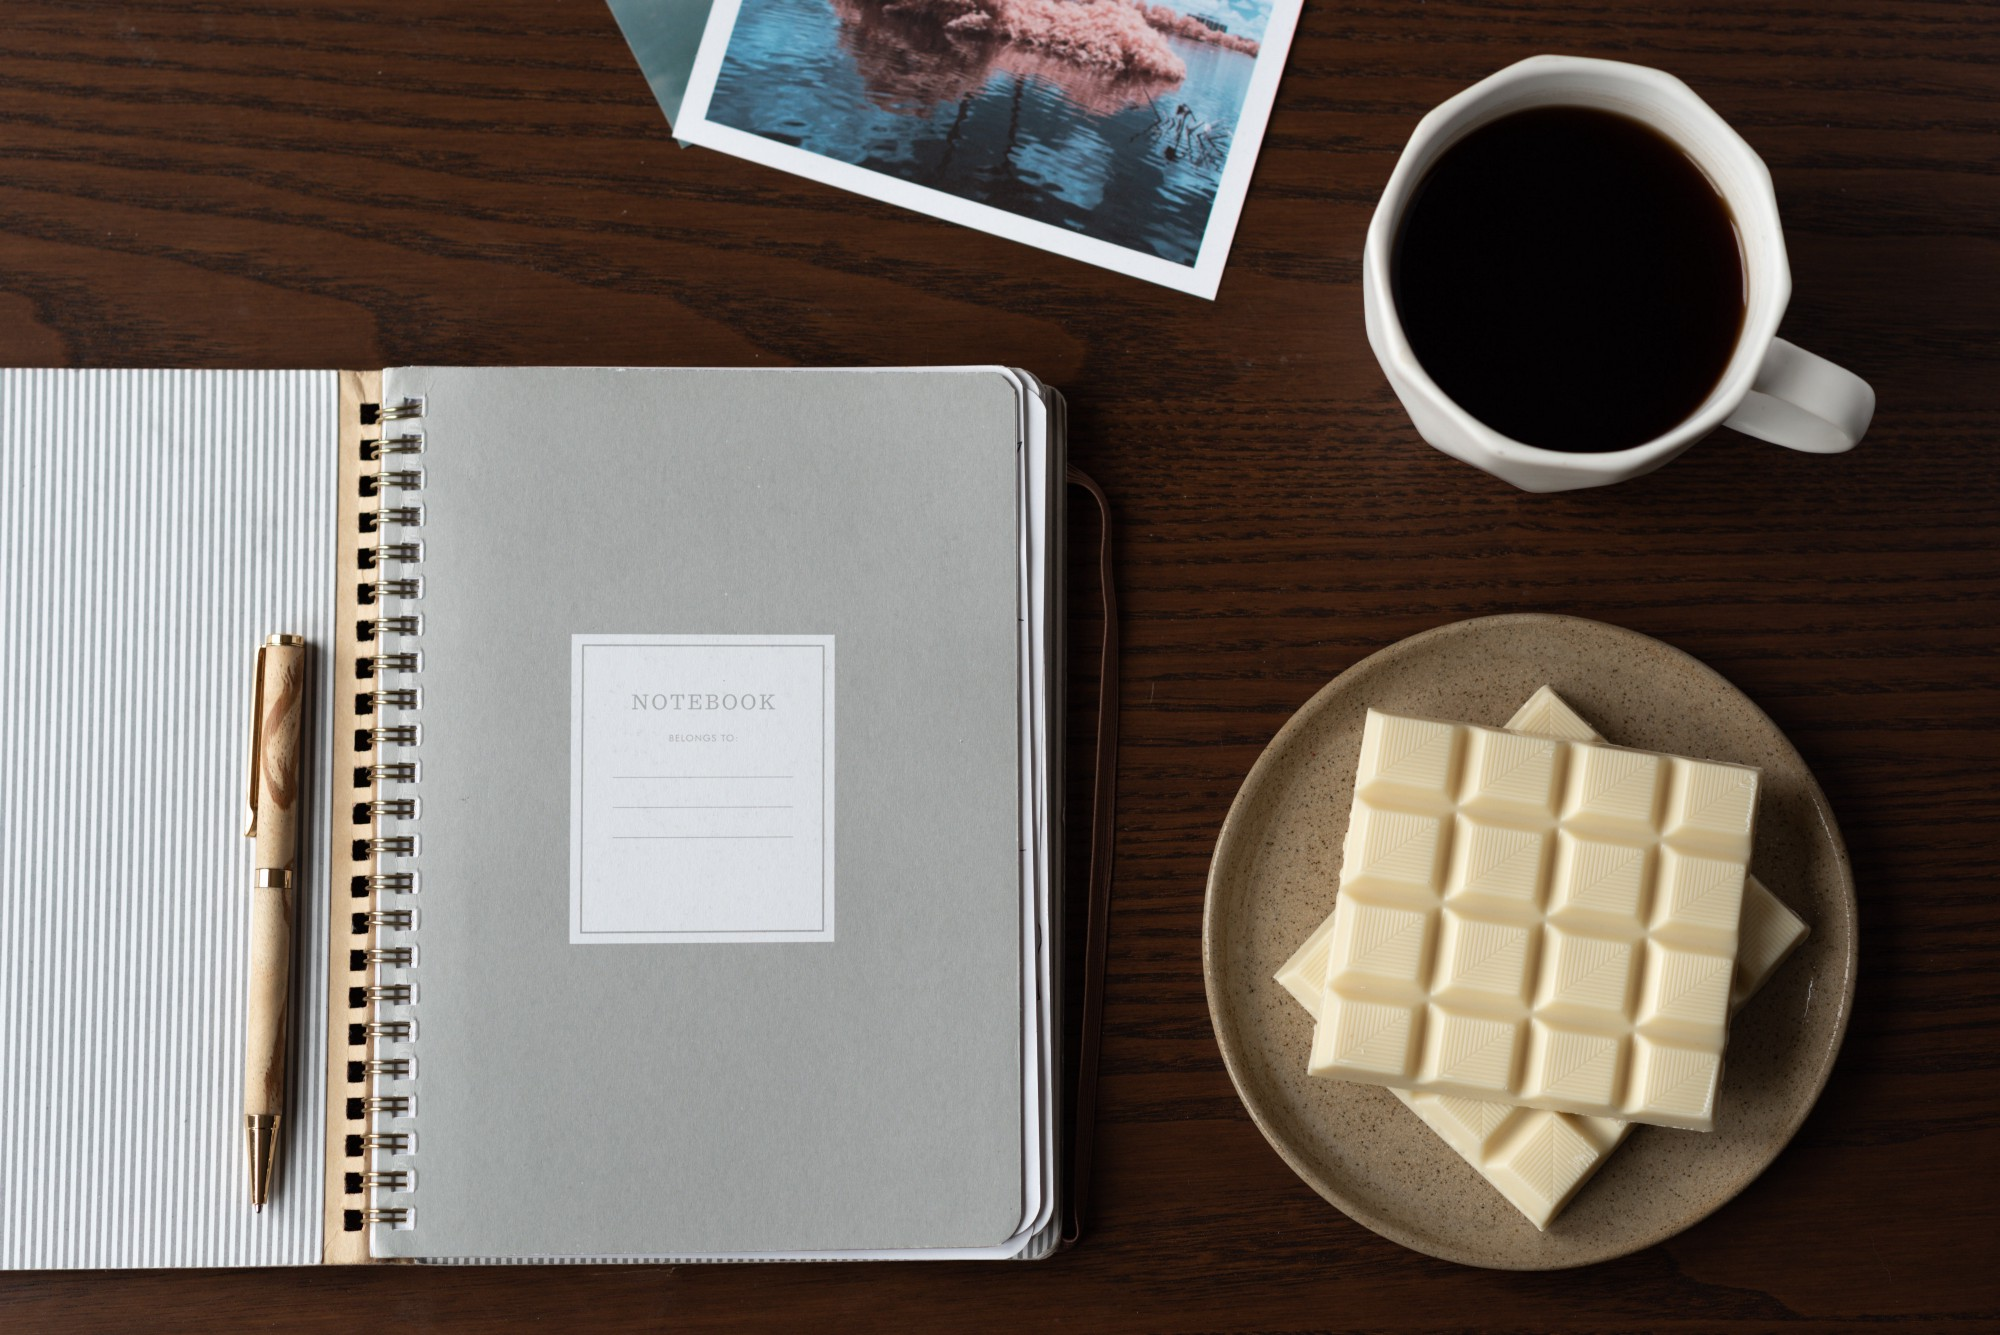 An open notebook laid out on a wooden table with chocolate, coffee, and a picture book.